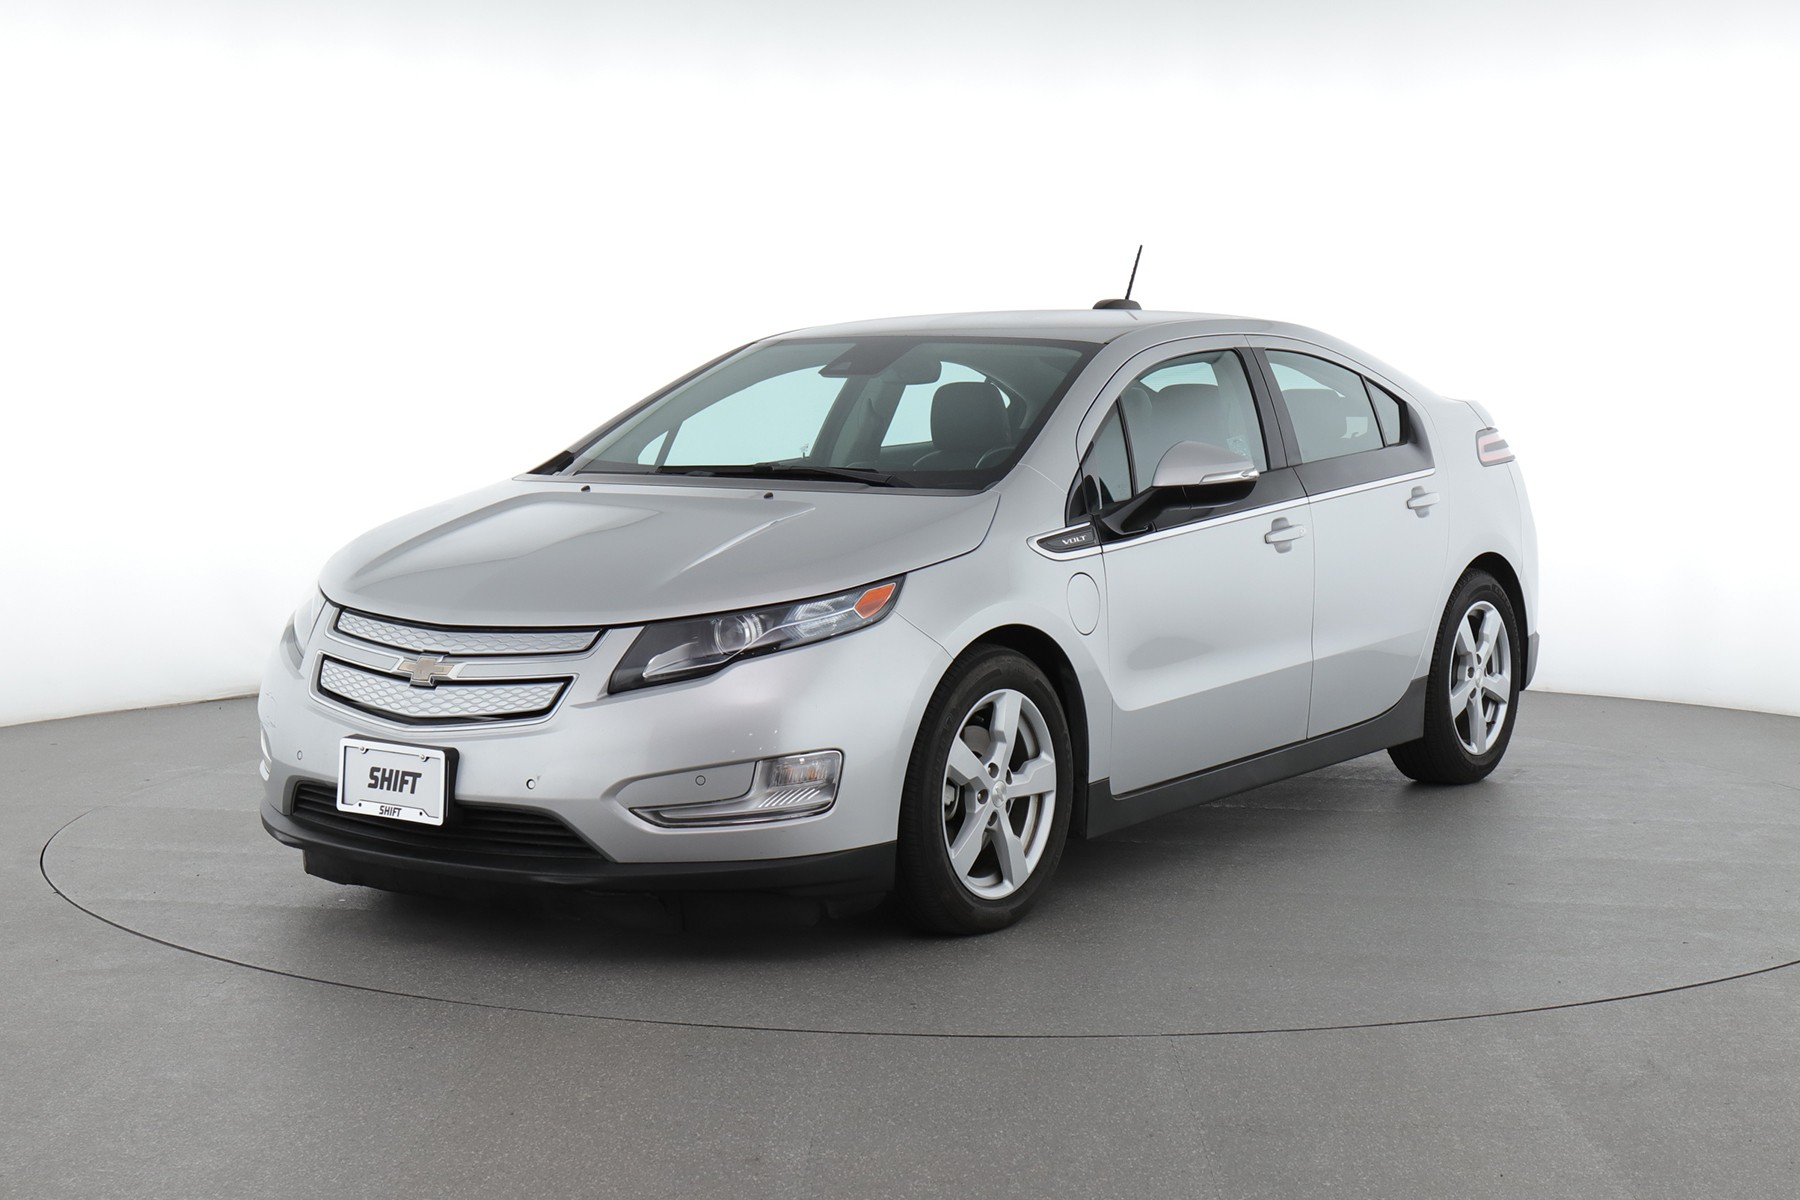 2015 Chevrolet Volt (from $13,750)